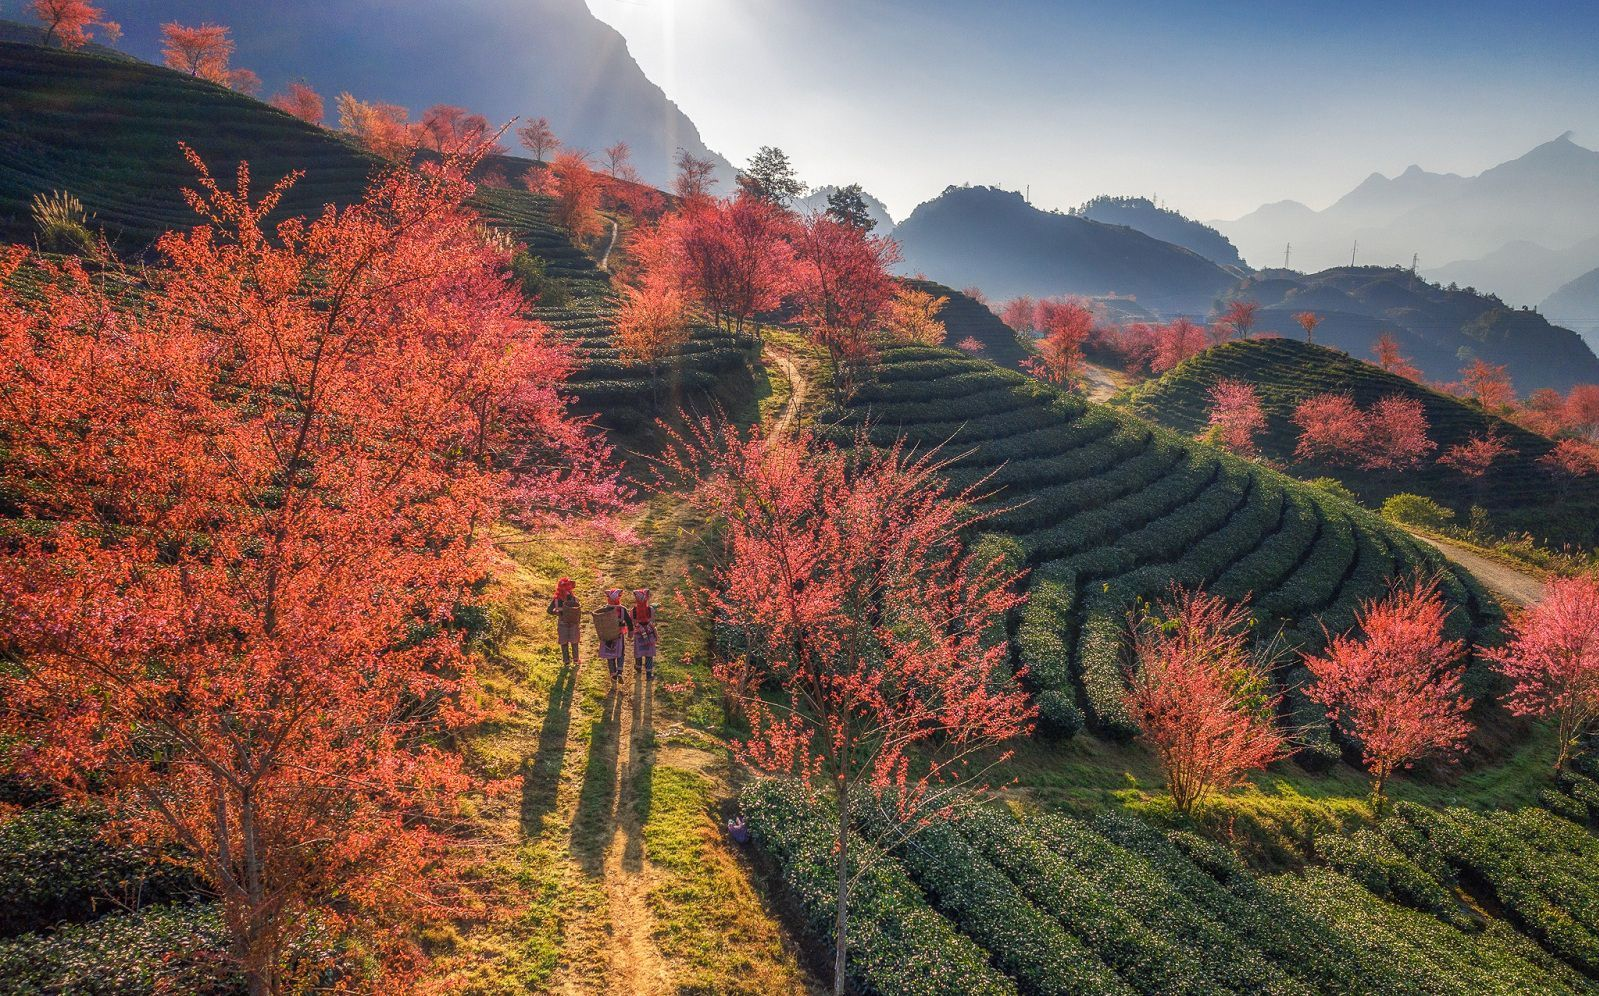 Four spots in Northwest Vietnam to see peach blossoms that fascinate visitors